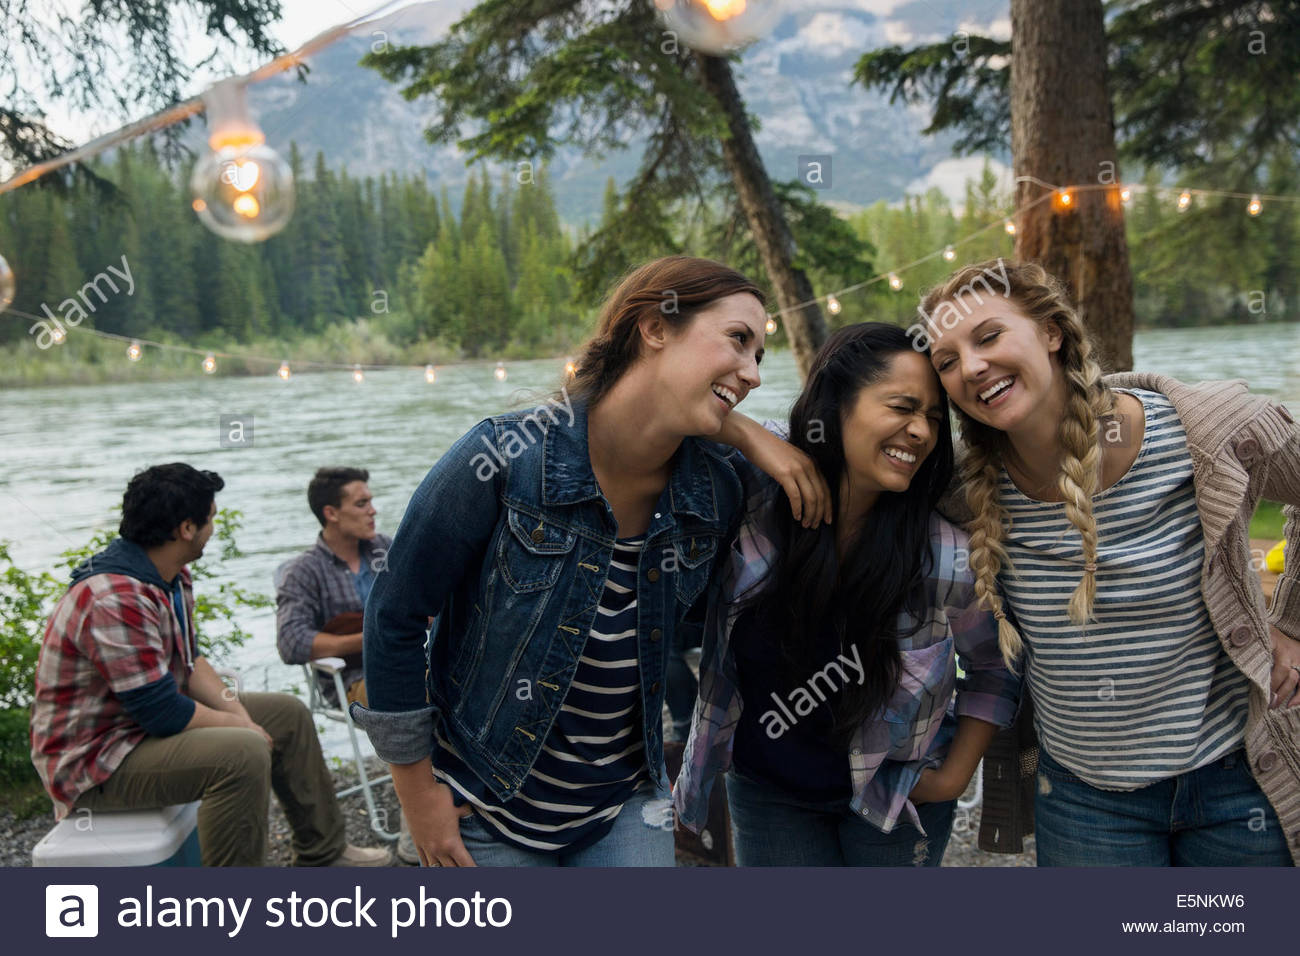 Girls laughing at lakeside campsite - Stock Image